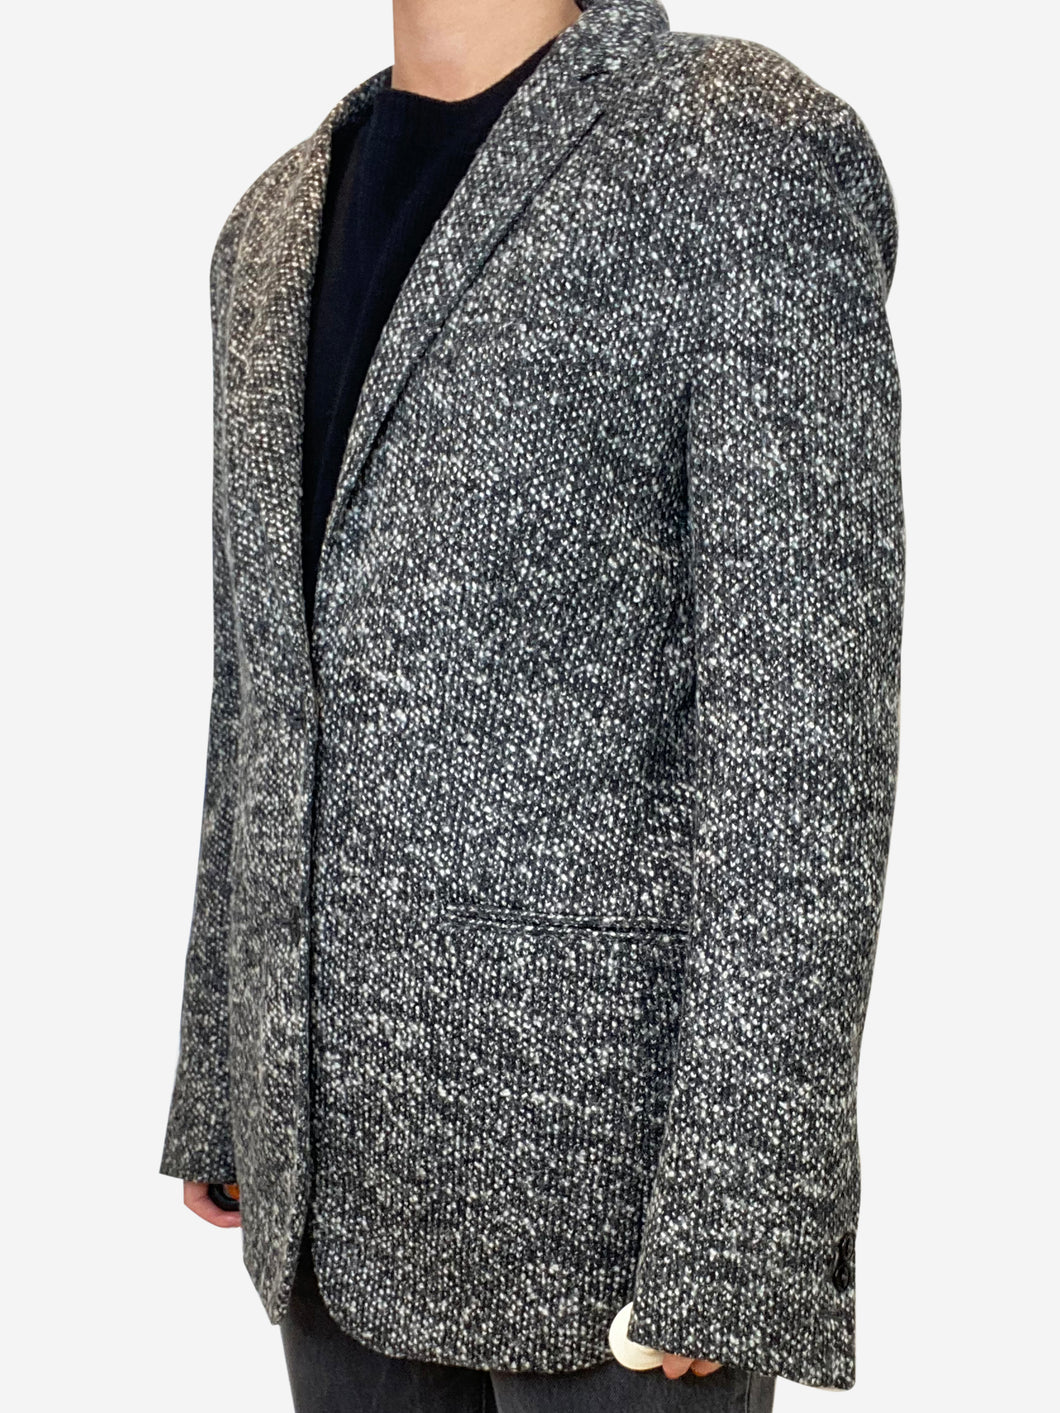 Grey knit blazer - size UK 10